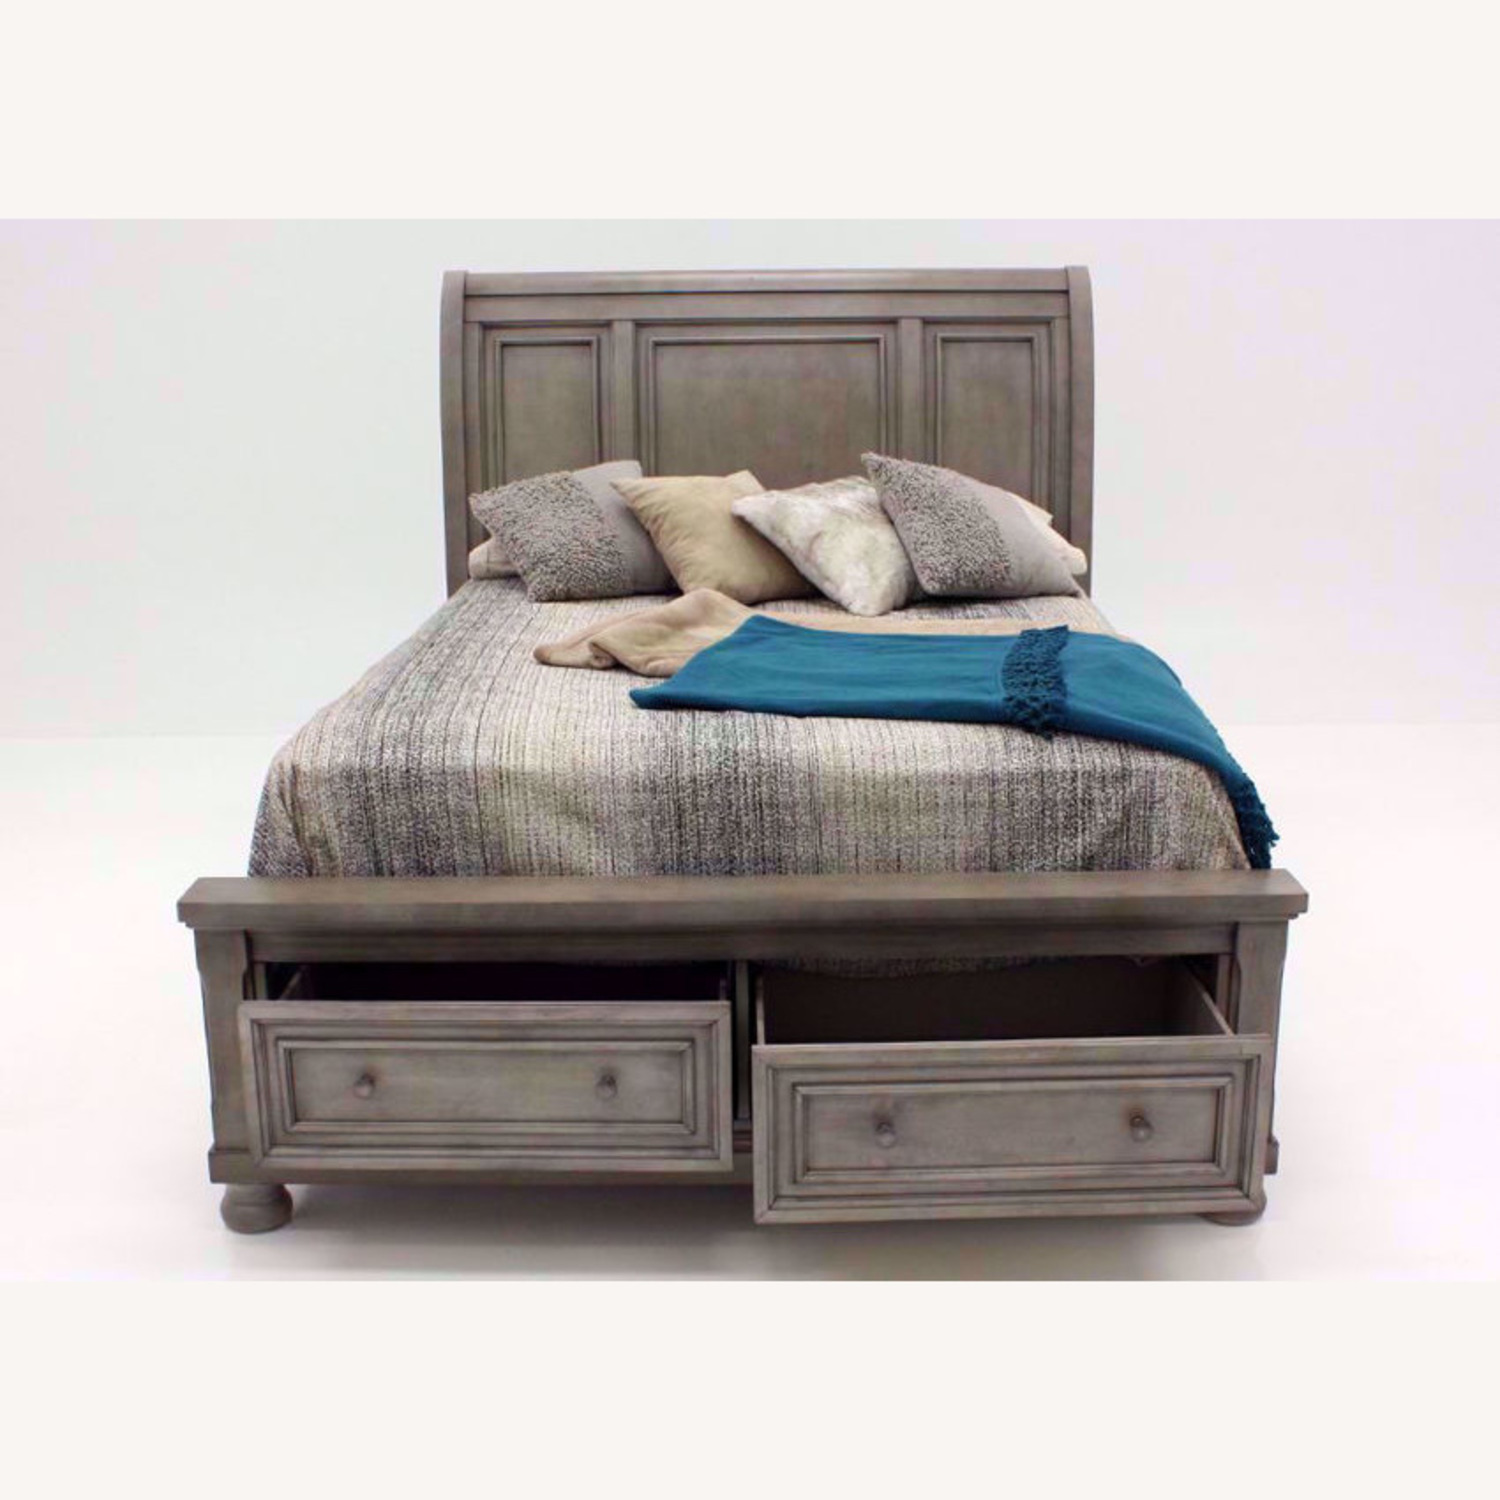 Ashley Furniture King Sleigh Bed with Storage - image-13